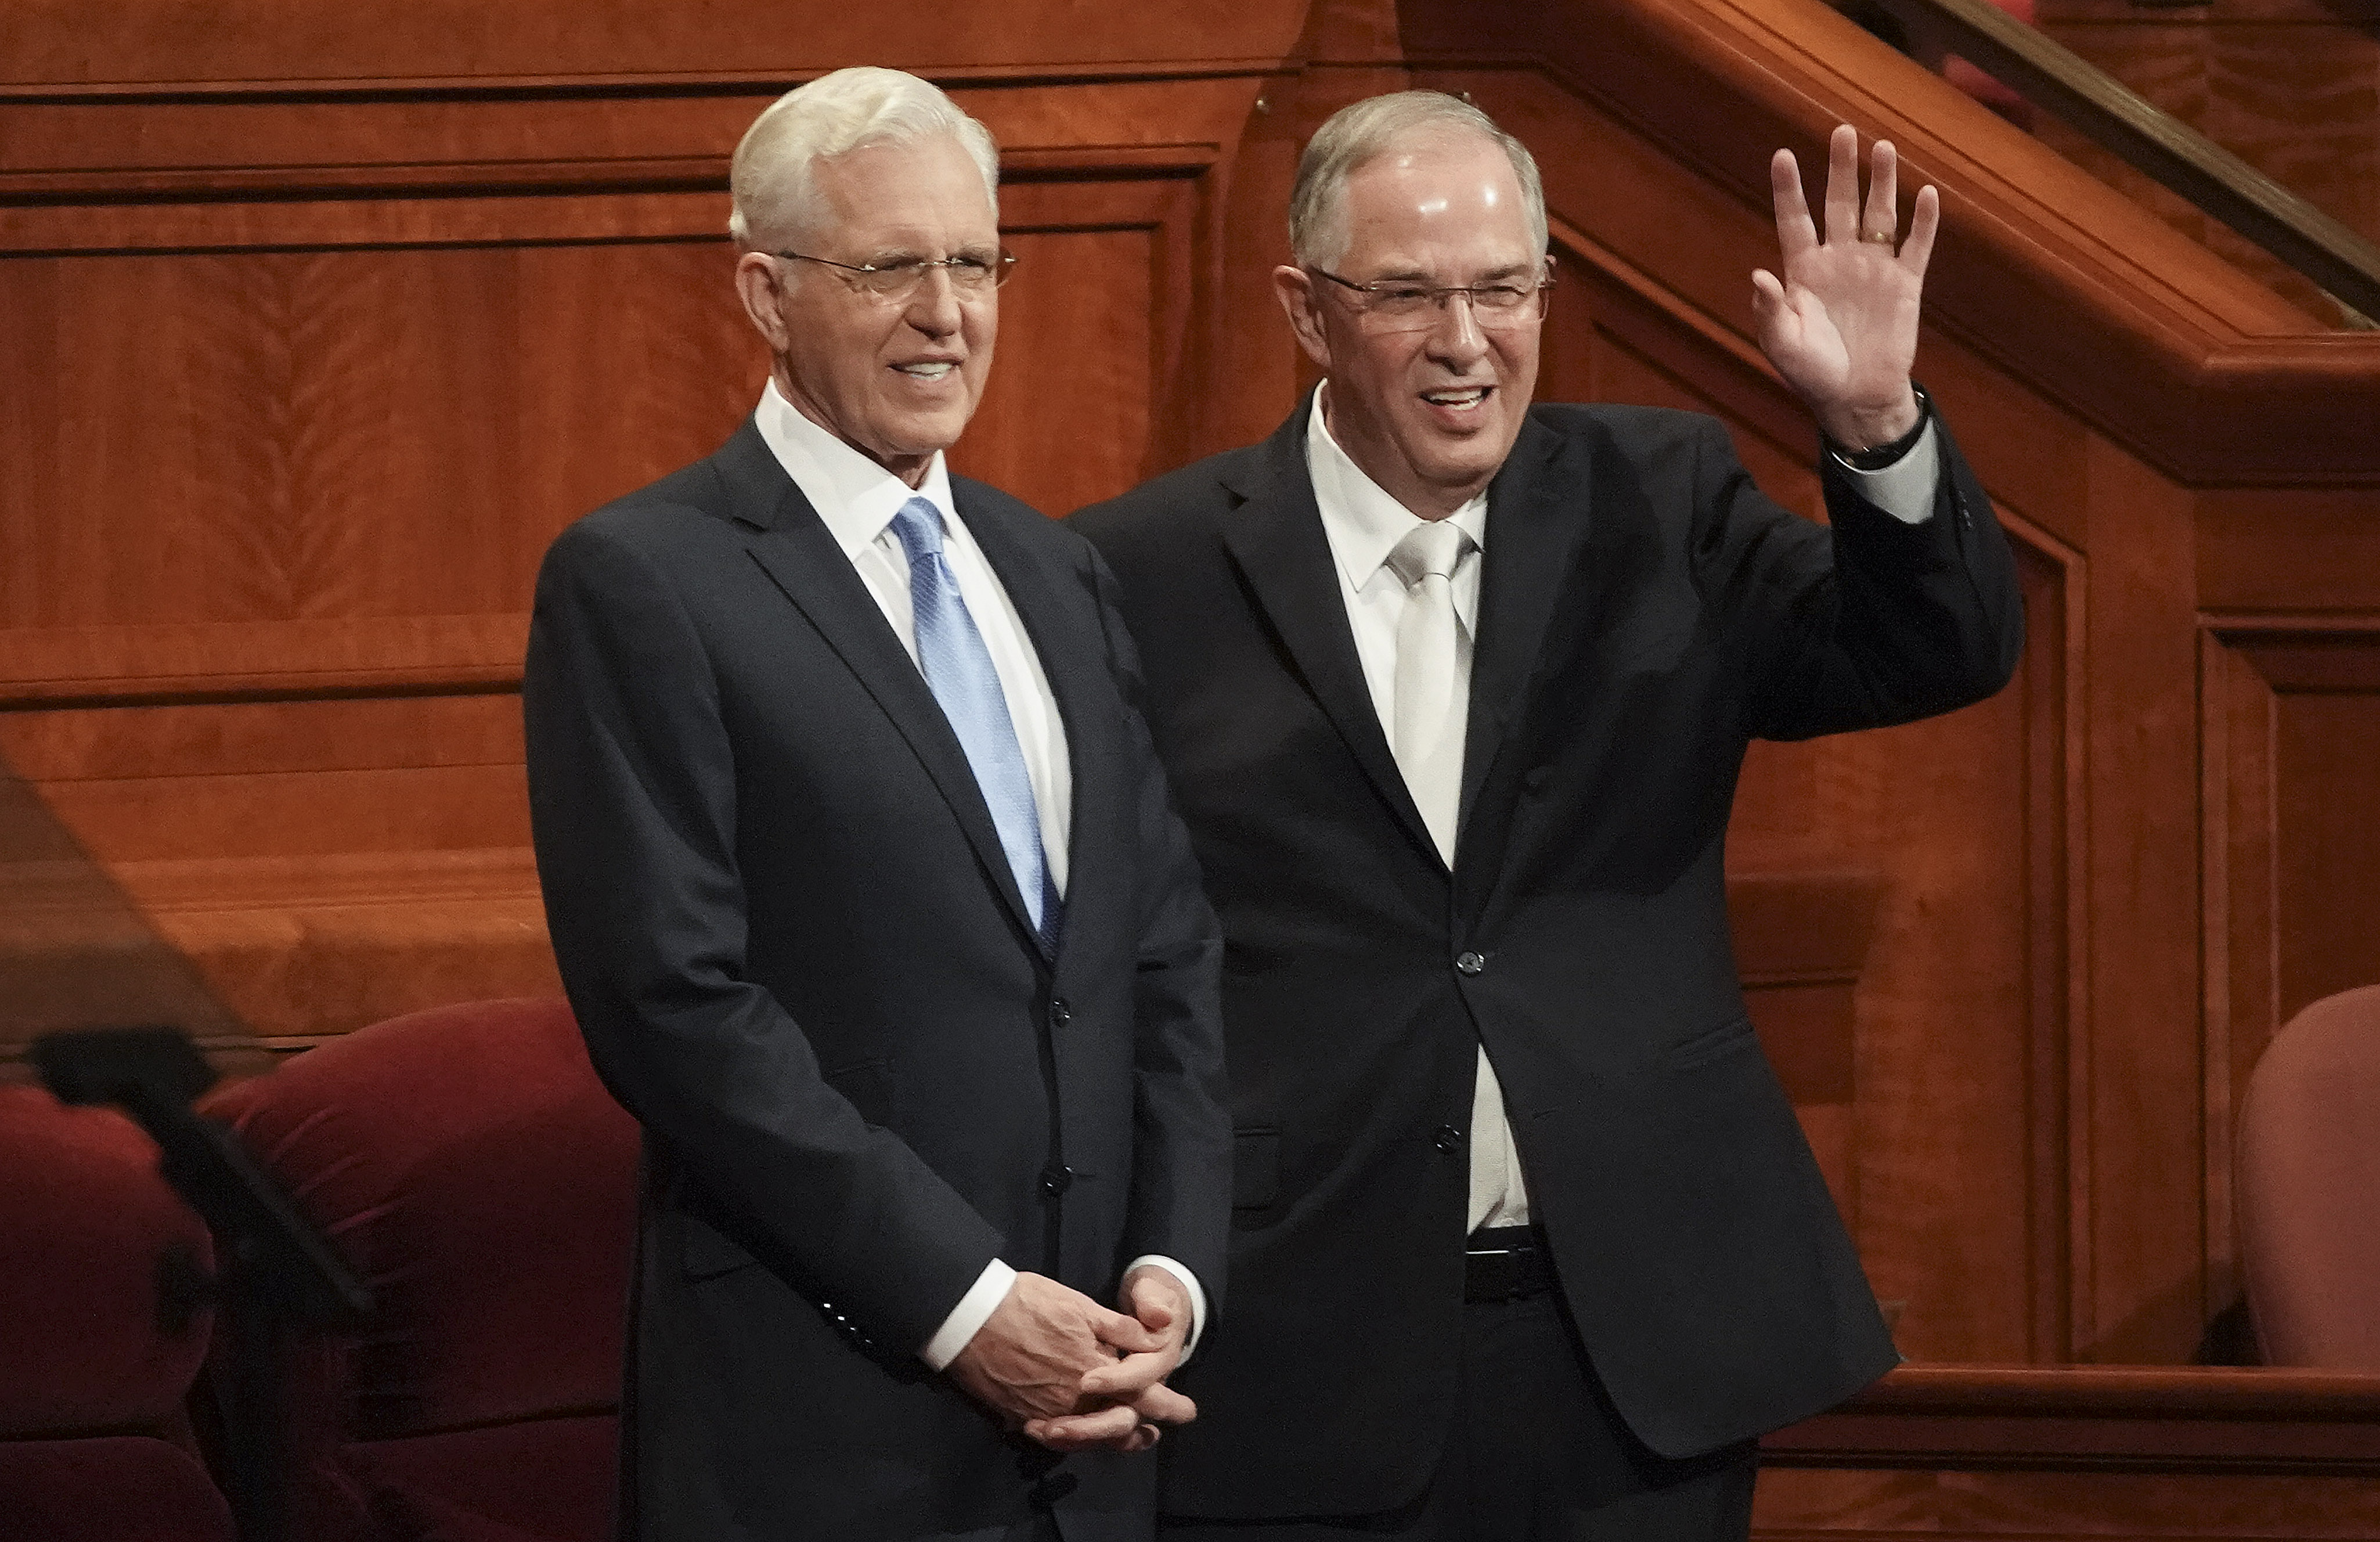 Elder D. Todd Christofferson, left, and Elder Neil L. Andersen of the Quorum of the Twelve Apostles wave to conferencegoers prior to the Saturday morning session of the 189th Semiannual General Conference of The Church of Jesus Christ of Latter-day Saints in Salt Lake City on Saturday, Oct. 5, 2019.